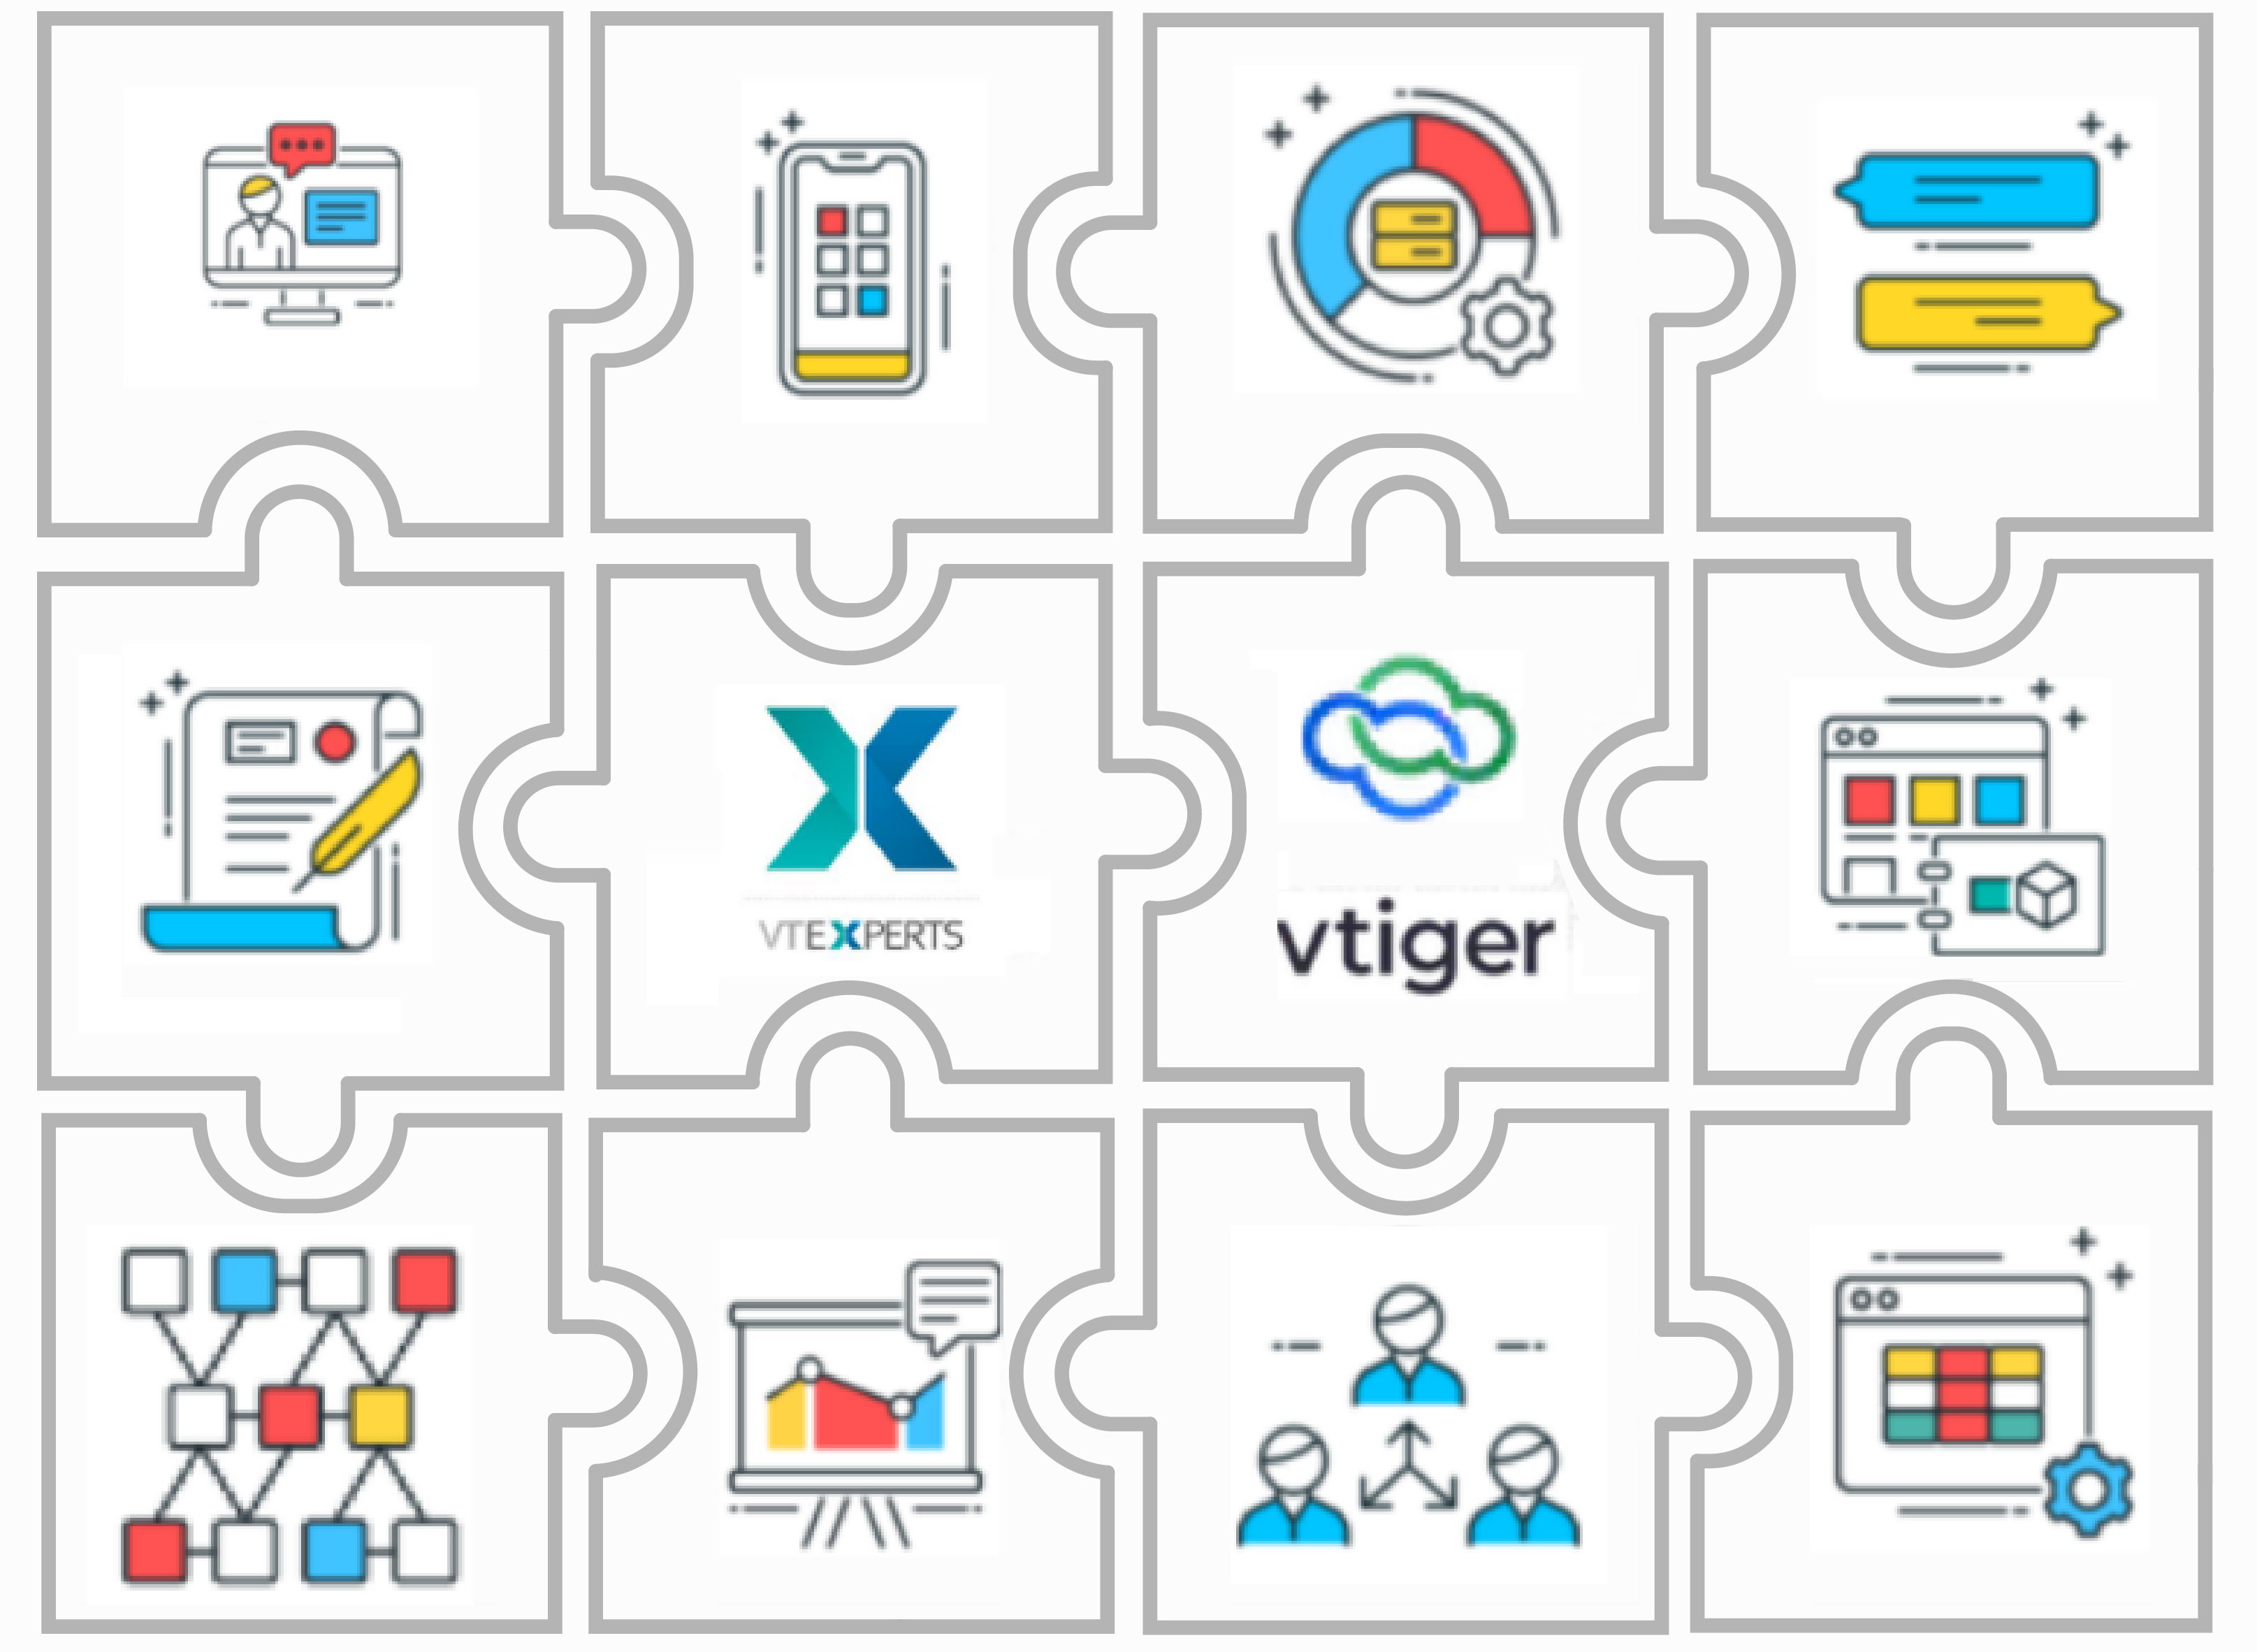 Extension for improving collaboration in CRM